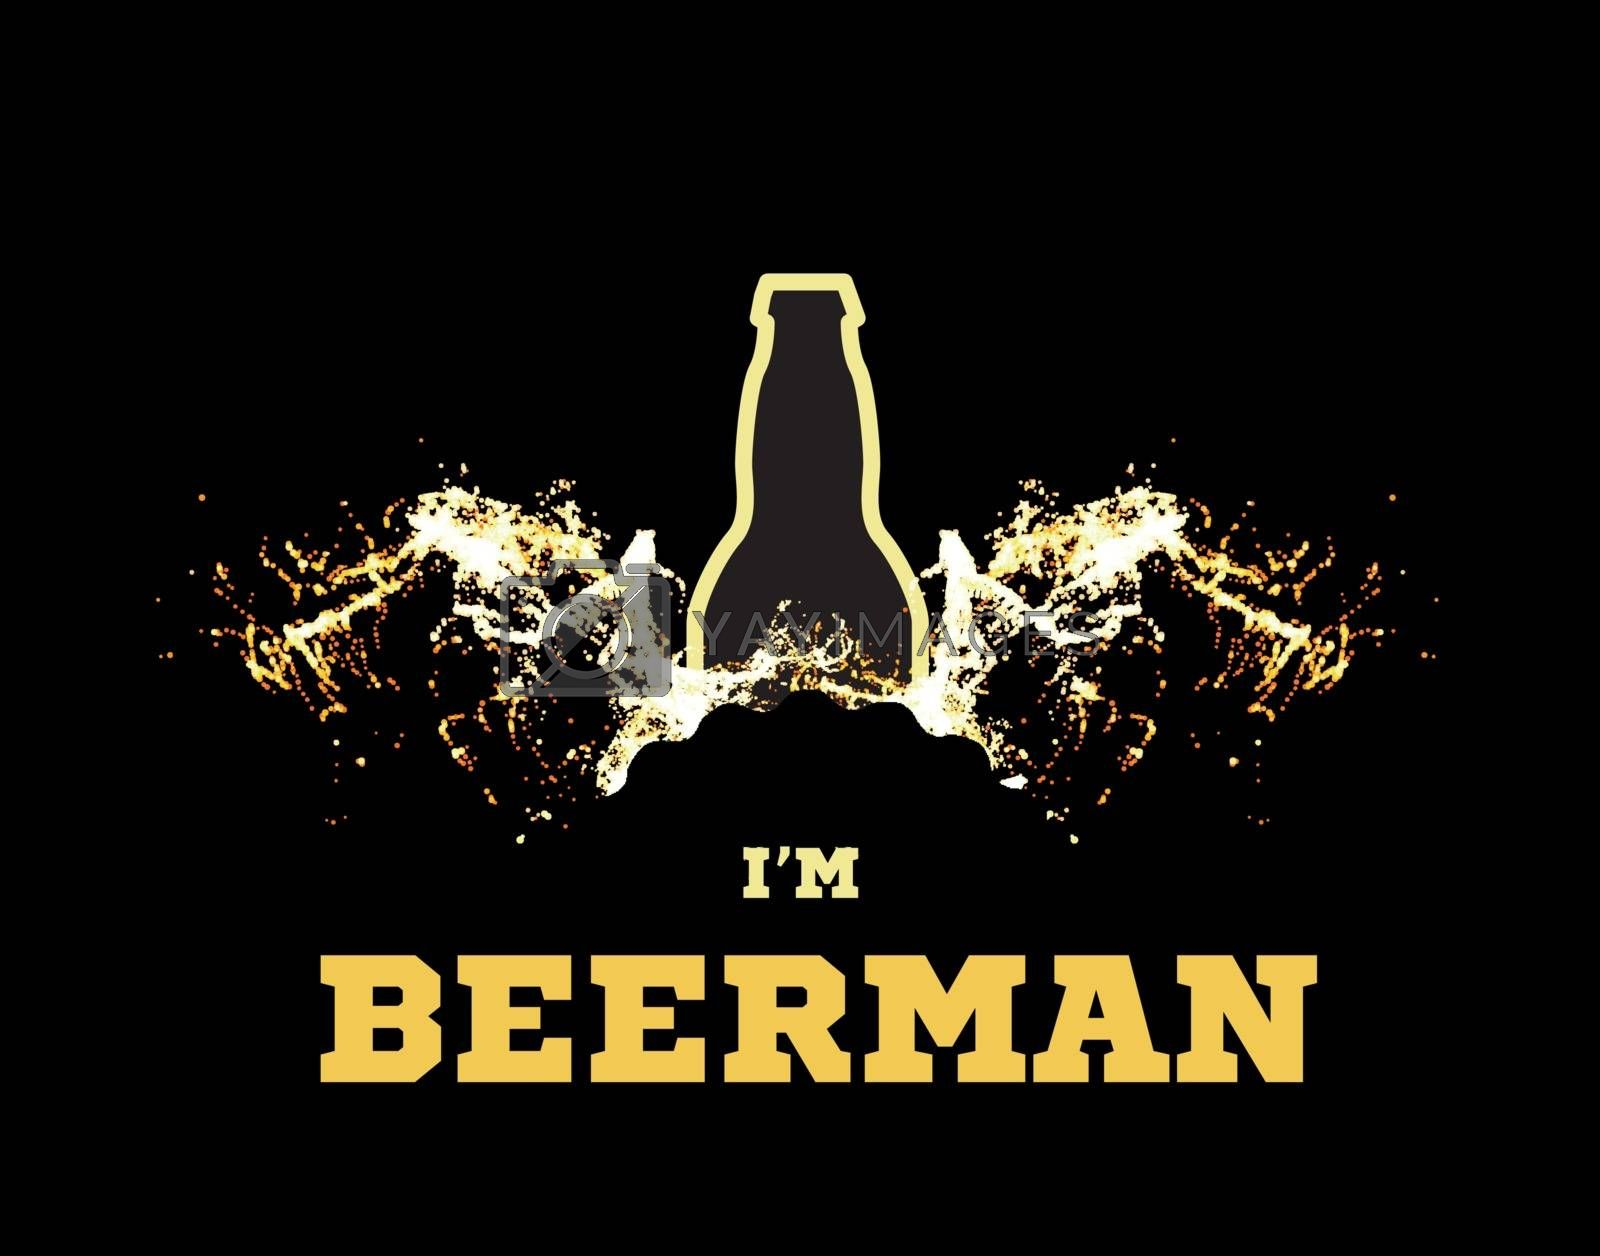 Vector illustration of a beerman with beer wings in the form of splashes and a silhouette of a bottle on black background